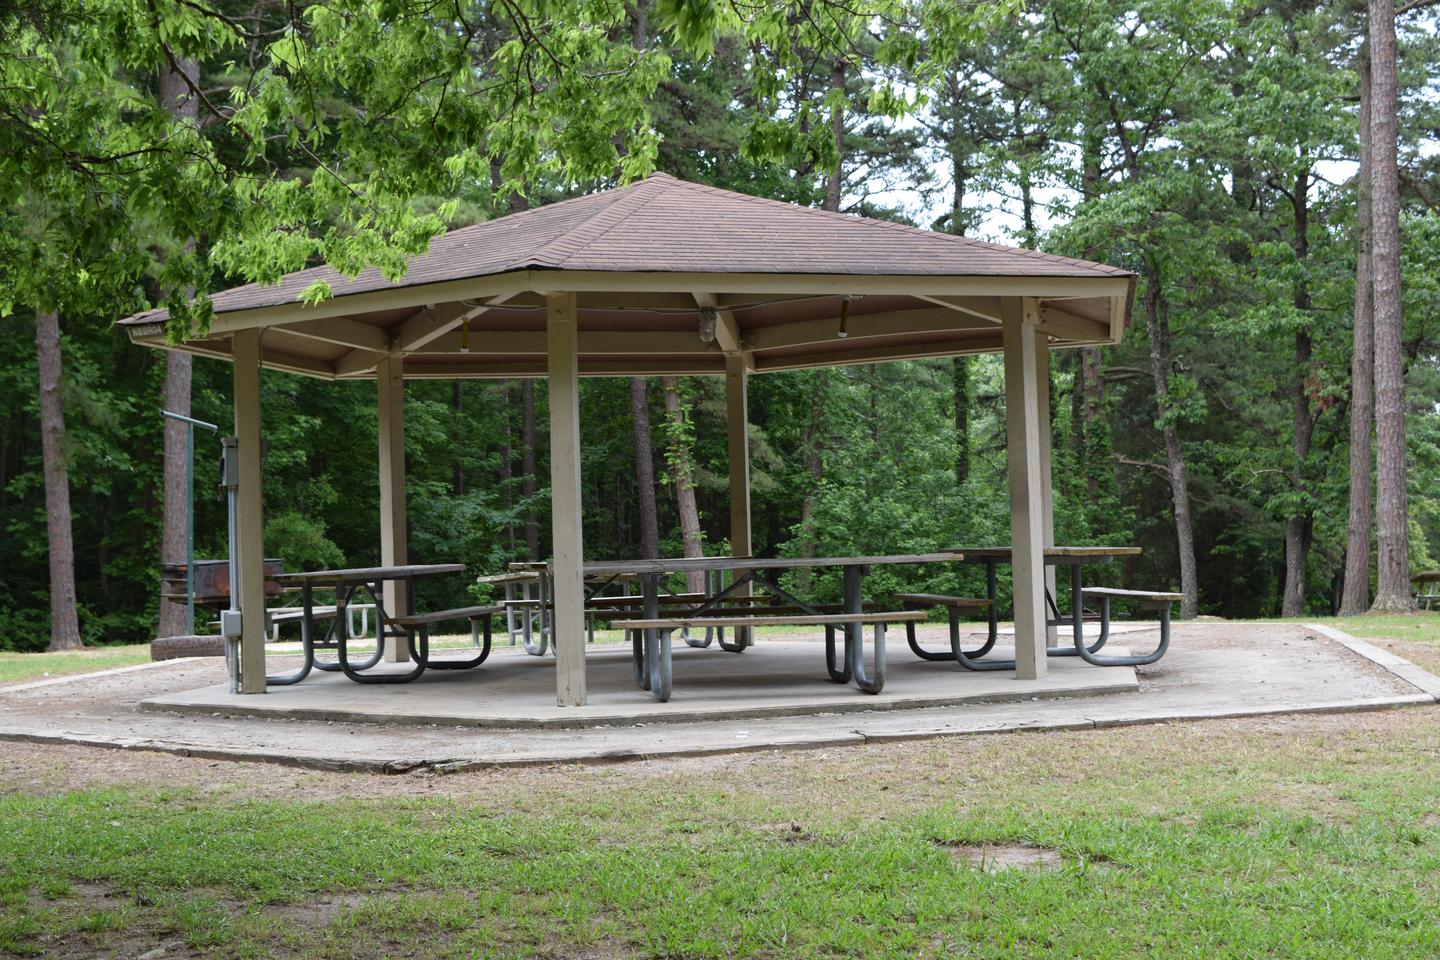 Mays Chapel Group Camping Area ShelterWelcome to Mays Chapel Group Camping Area! This is a picture of the shelter that is located in the area. The shelter does have electricity but does not have an electricity hook up for a camper. There are picnic tables under the shelter. There is also a water spigot near by for your use.